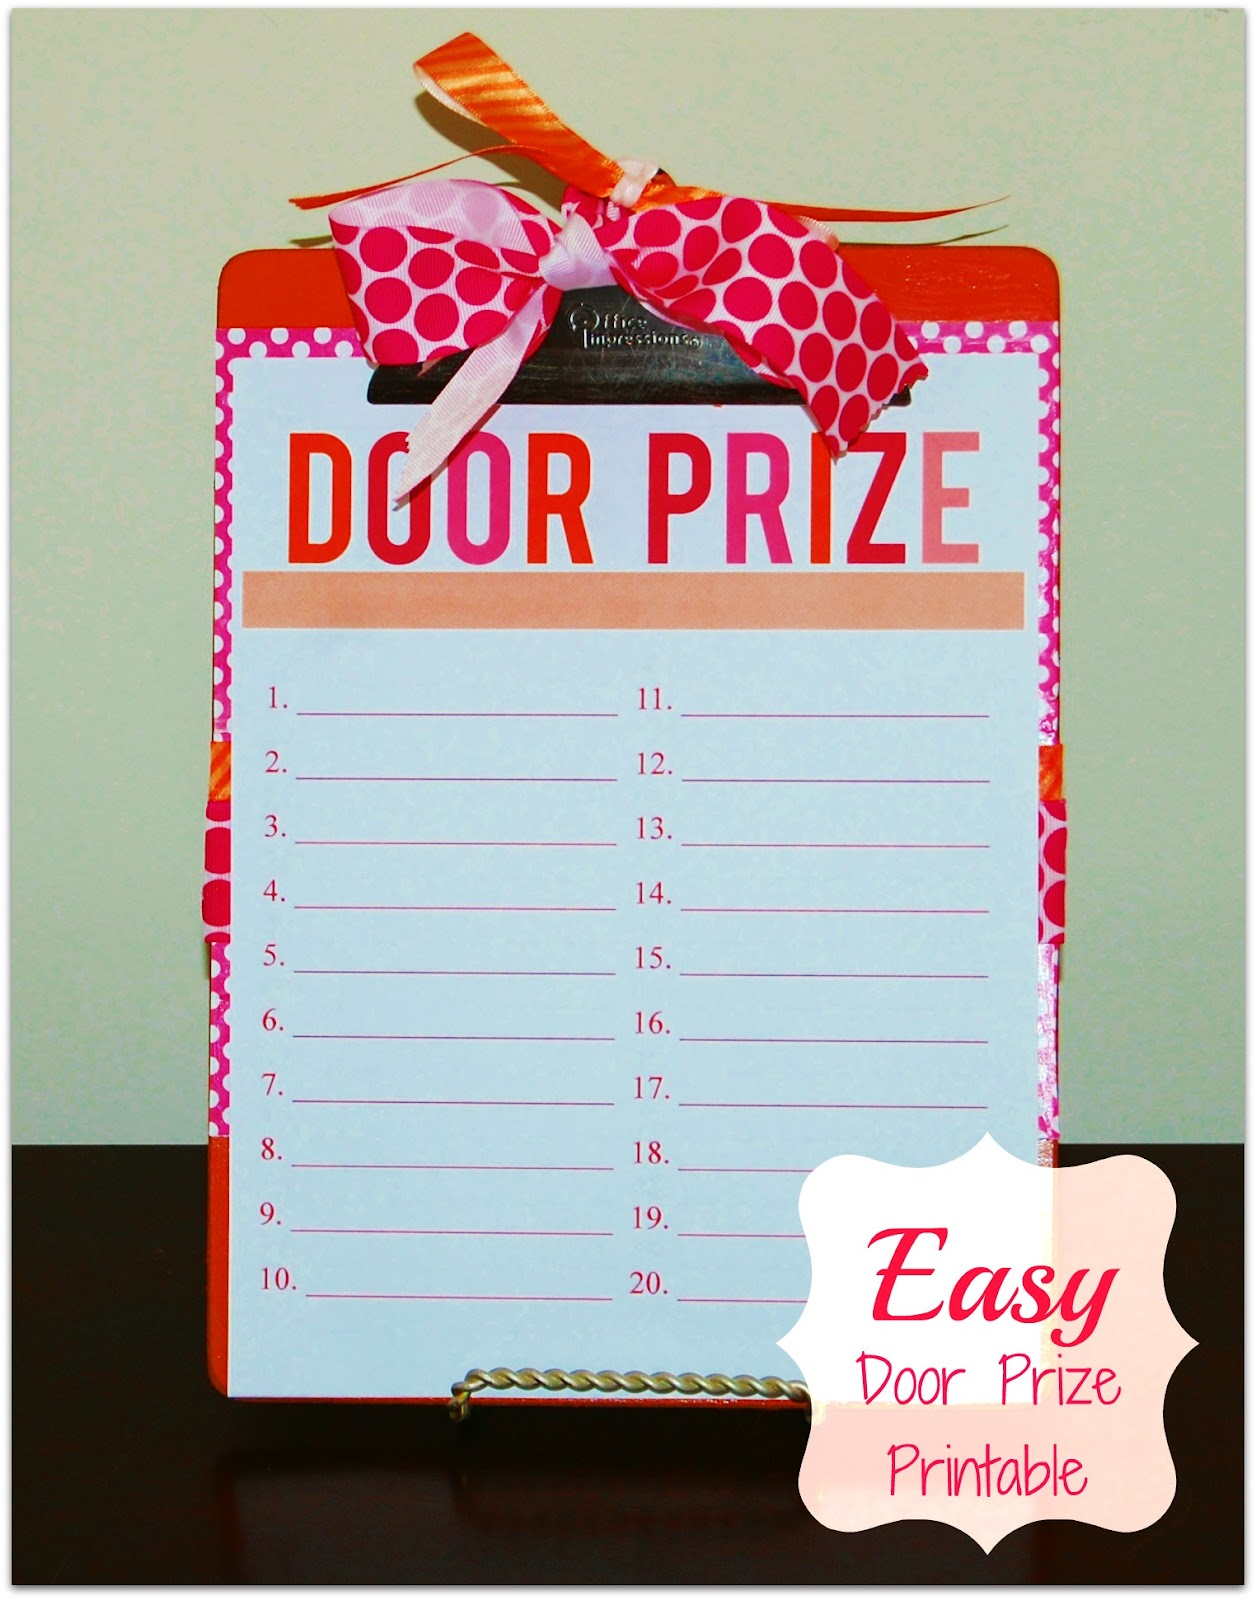 Door prize party printable jazzed up clipboard for Idea for door prizes